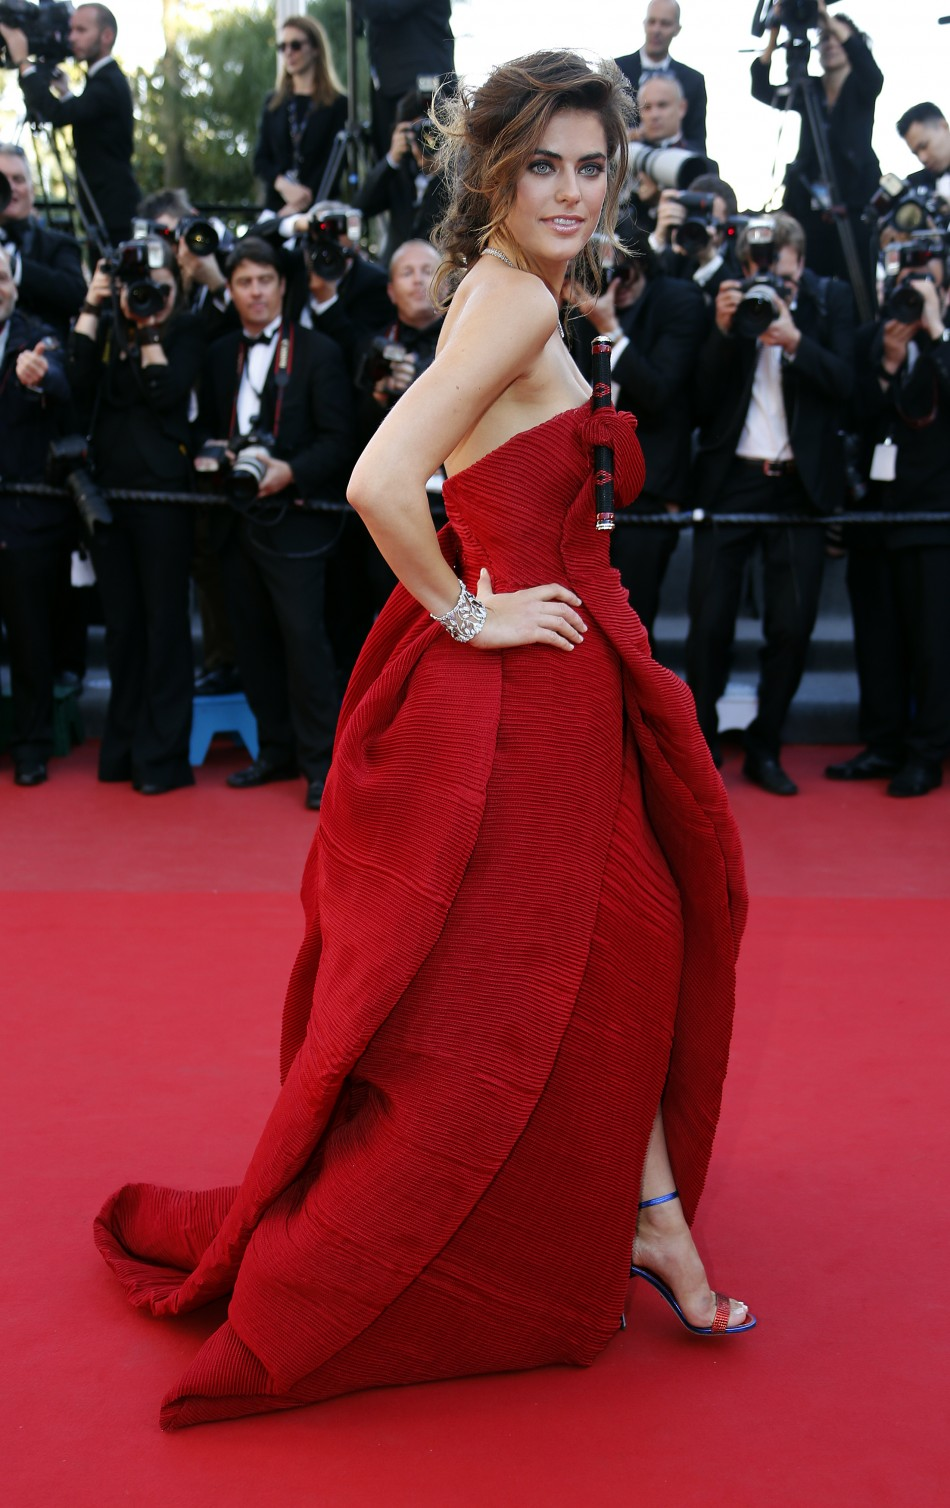 Model Alyson Le Borges poses on the red carpet as she arrives for the screening of the film Blood Ties during the 66th Cannes Film Festival in Cannes May 20, 2013.